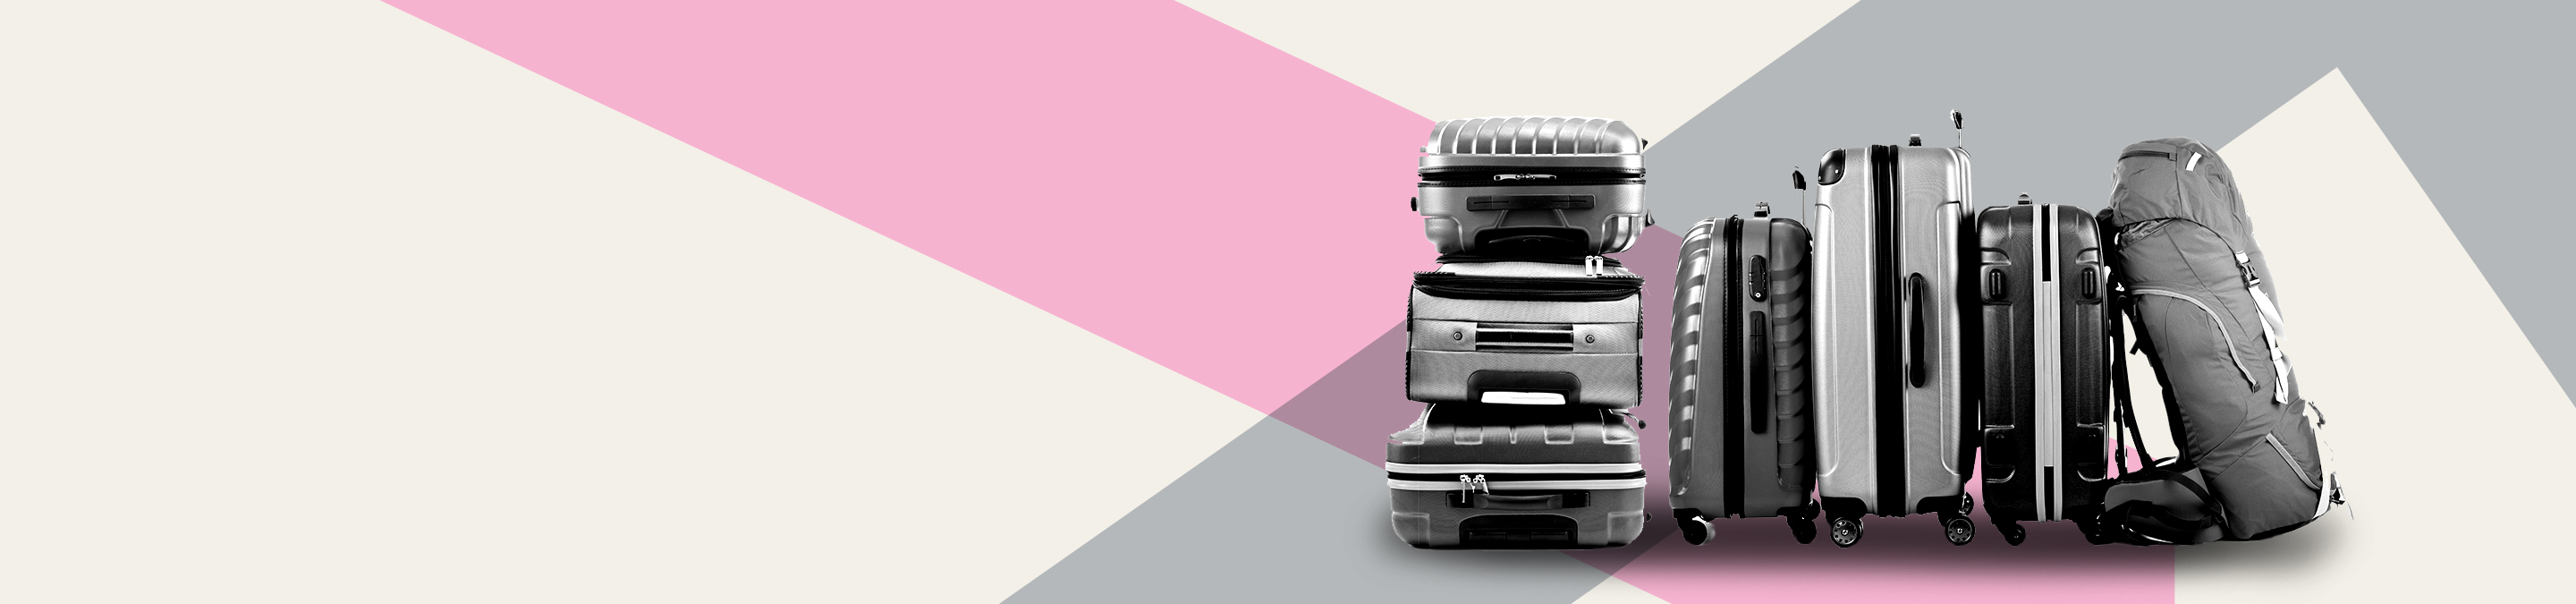 a group of luggage sitting on top of a suitcase